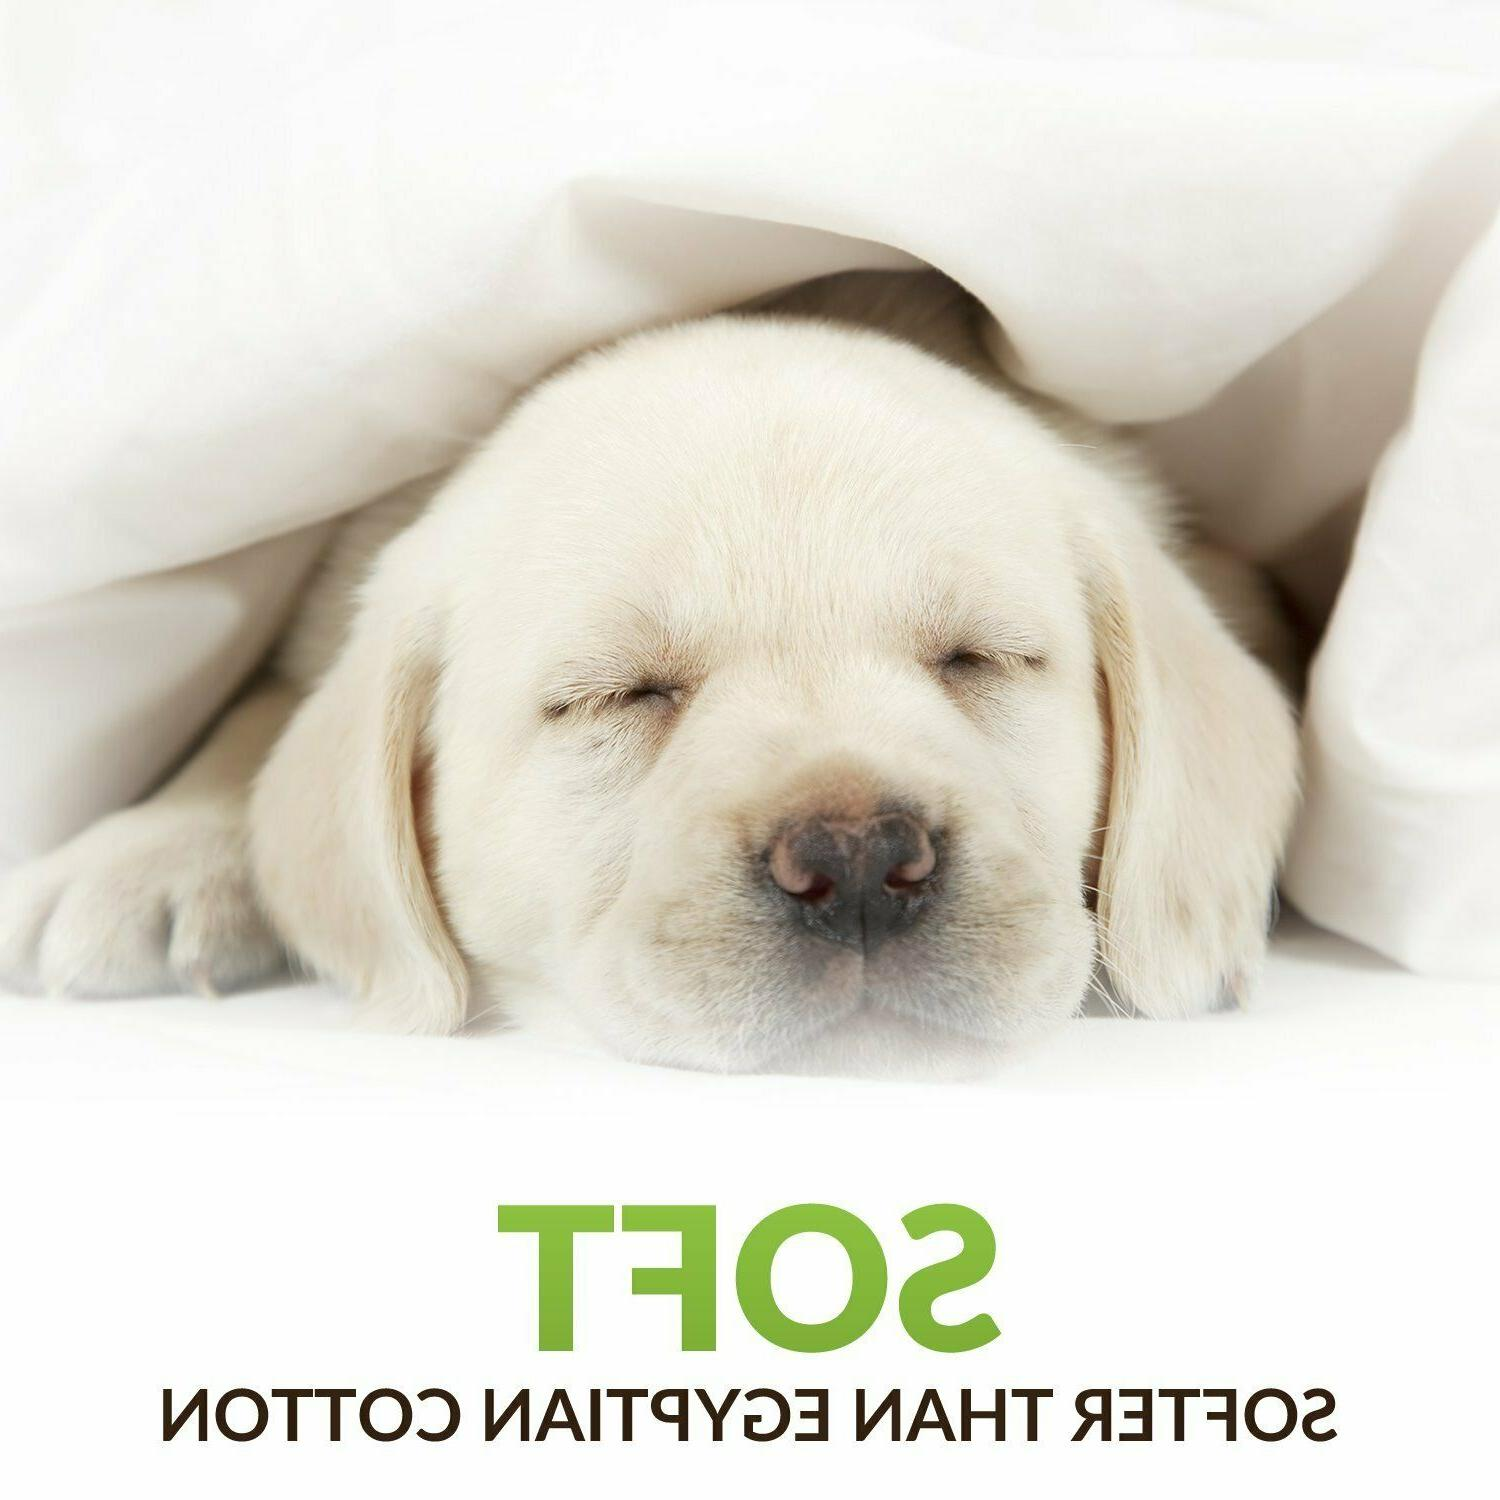 Premium Pillowcase of 2 Ultra Soft Hypoallergenic